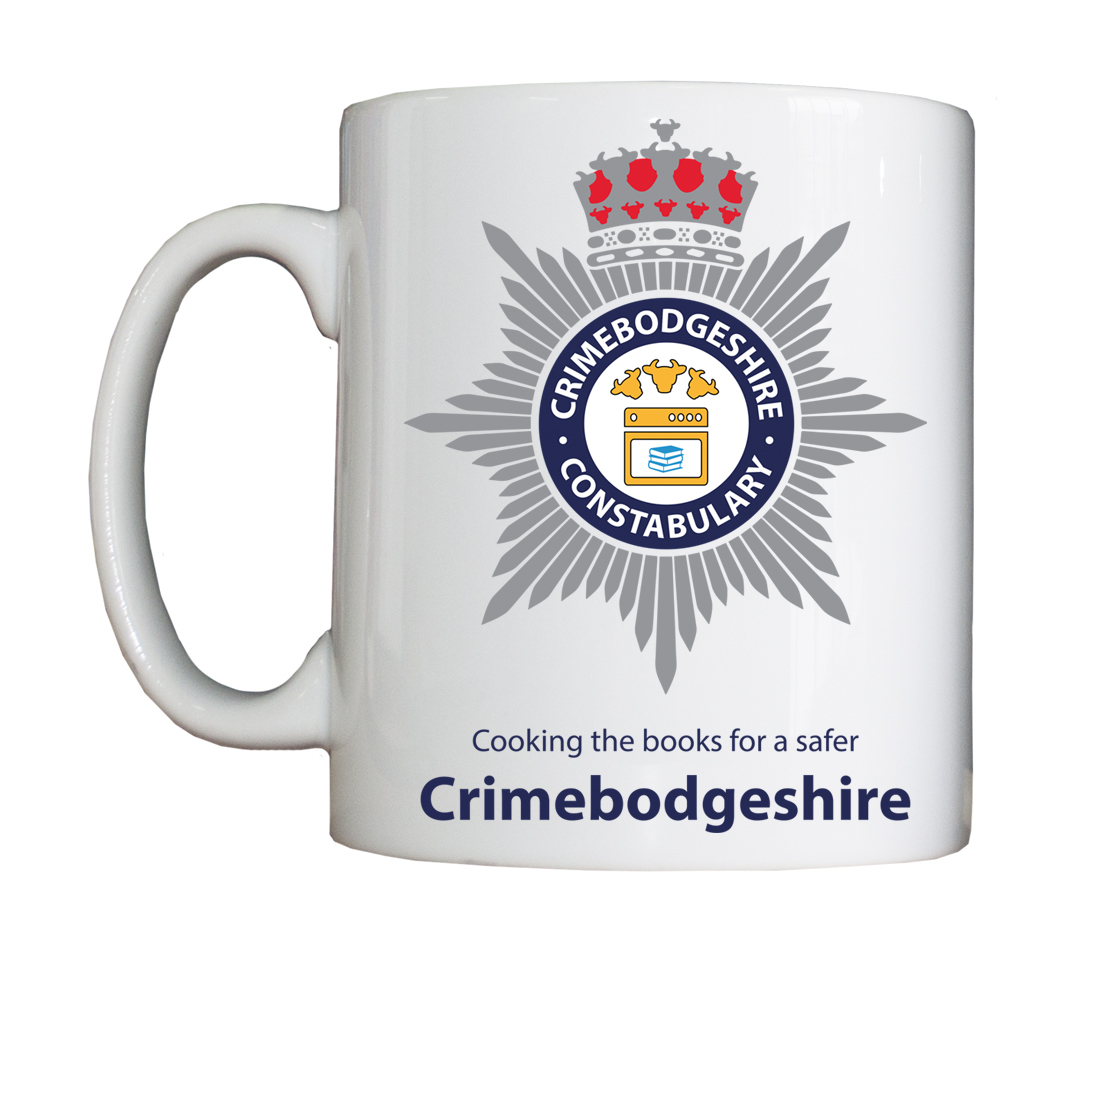 Personalised 'Crimebodgeshire' Drinking Vessel (Mug) CrimebodgeshireMug